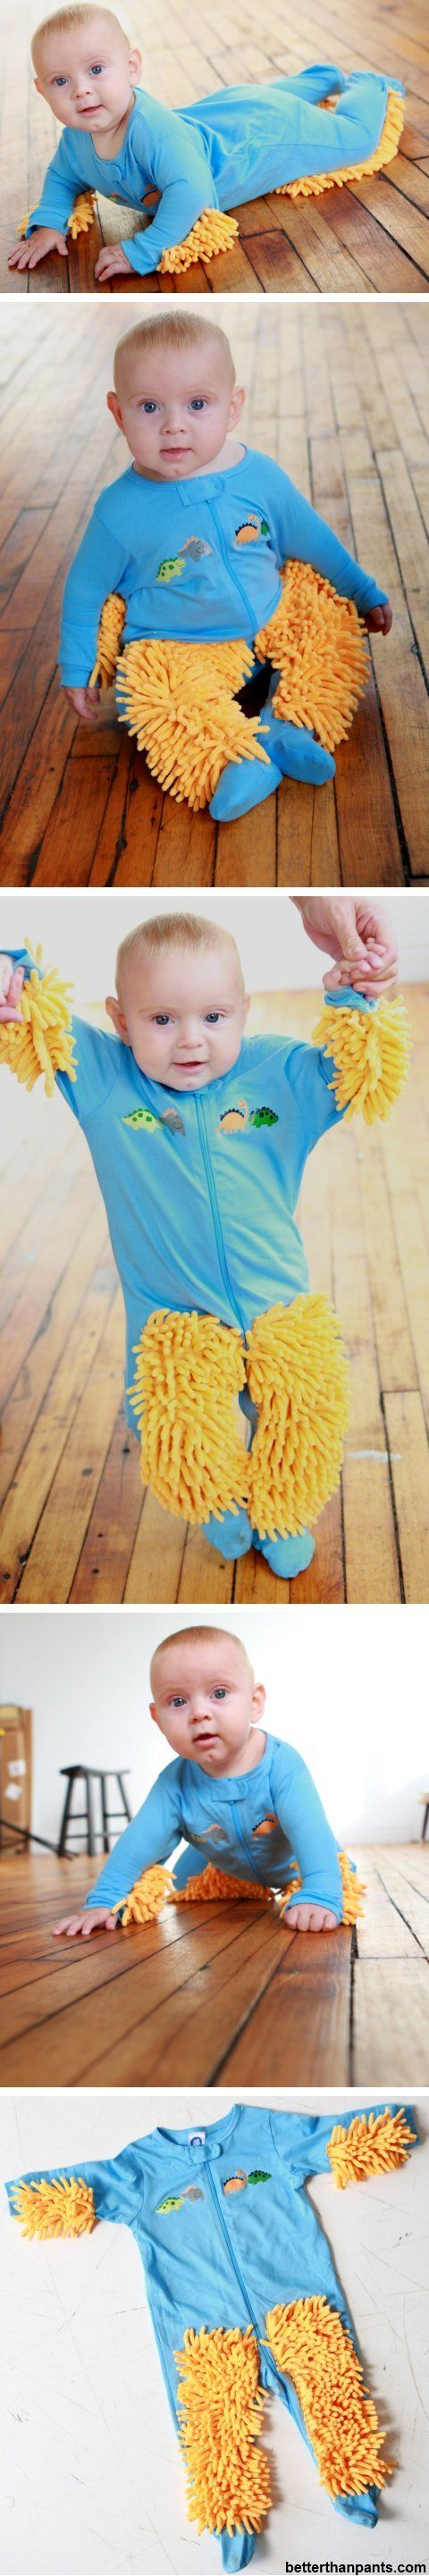 "Yes.  This is for real.  It's called the ""Baby Mop"".  This outfit transforms your crawling infant into a tool commonly used for household chores. Well, at the very least their little knees and elbows are well cushioned. child abuse or genius?"